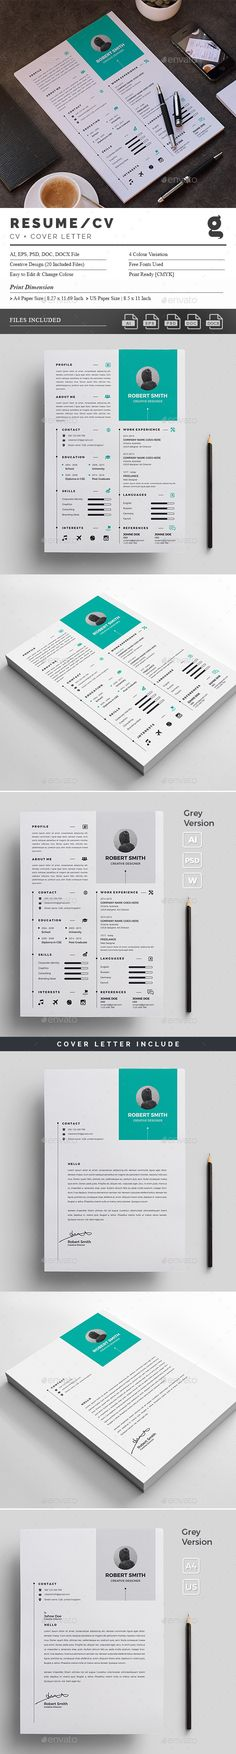 Creative Resume Template - CV Template - Free Cover Letter - Word ...